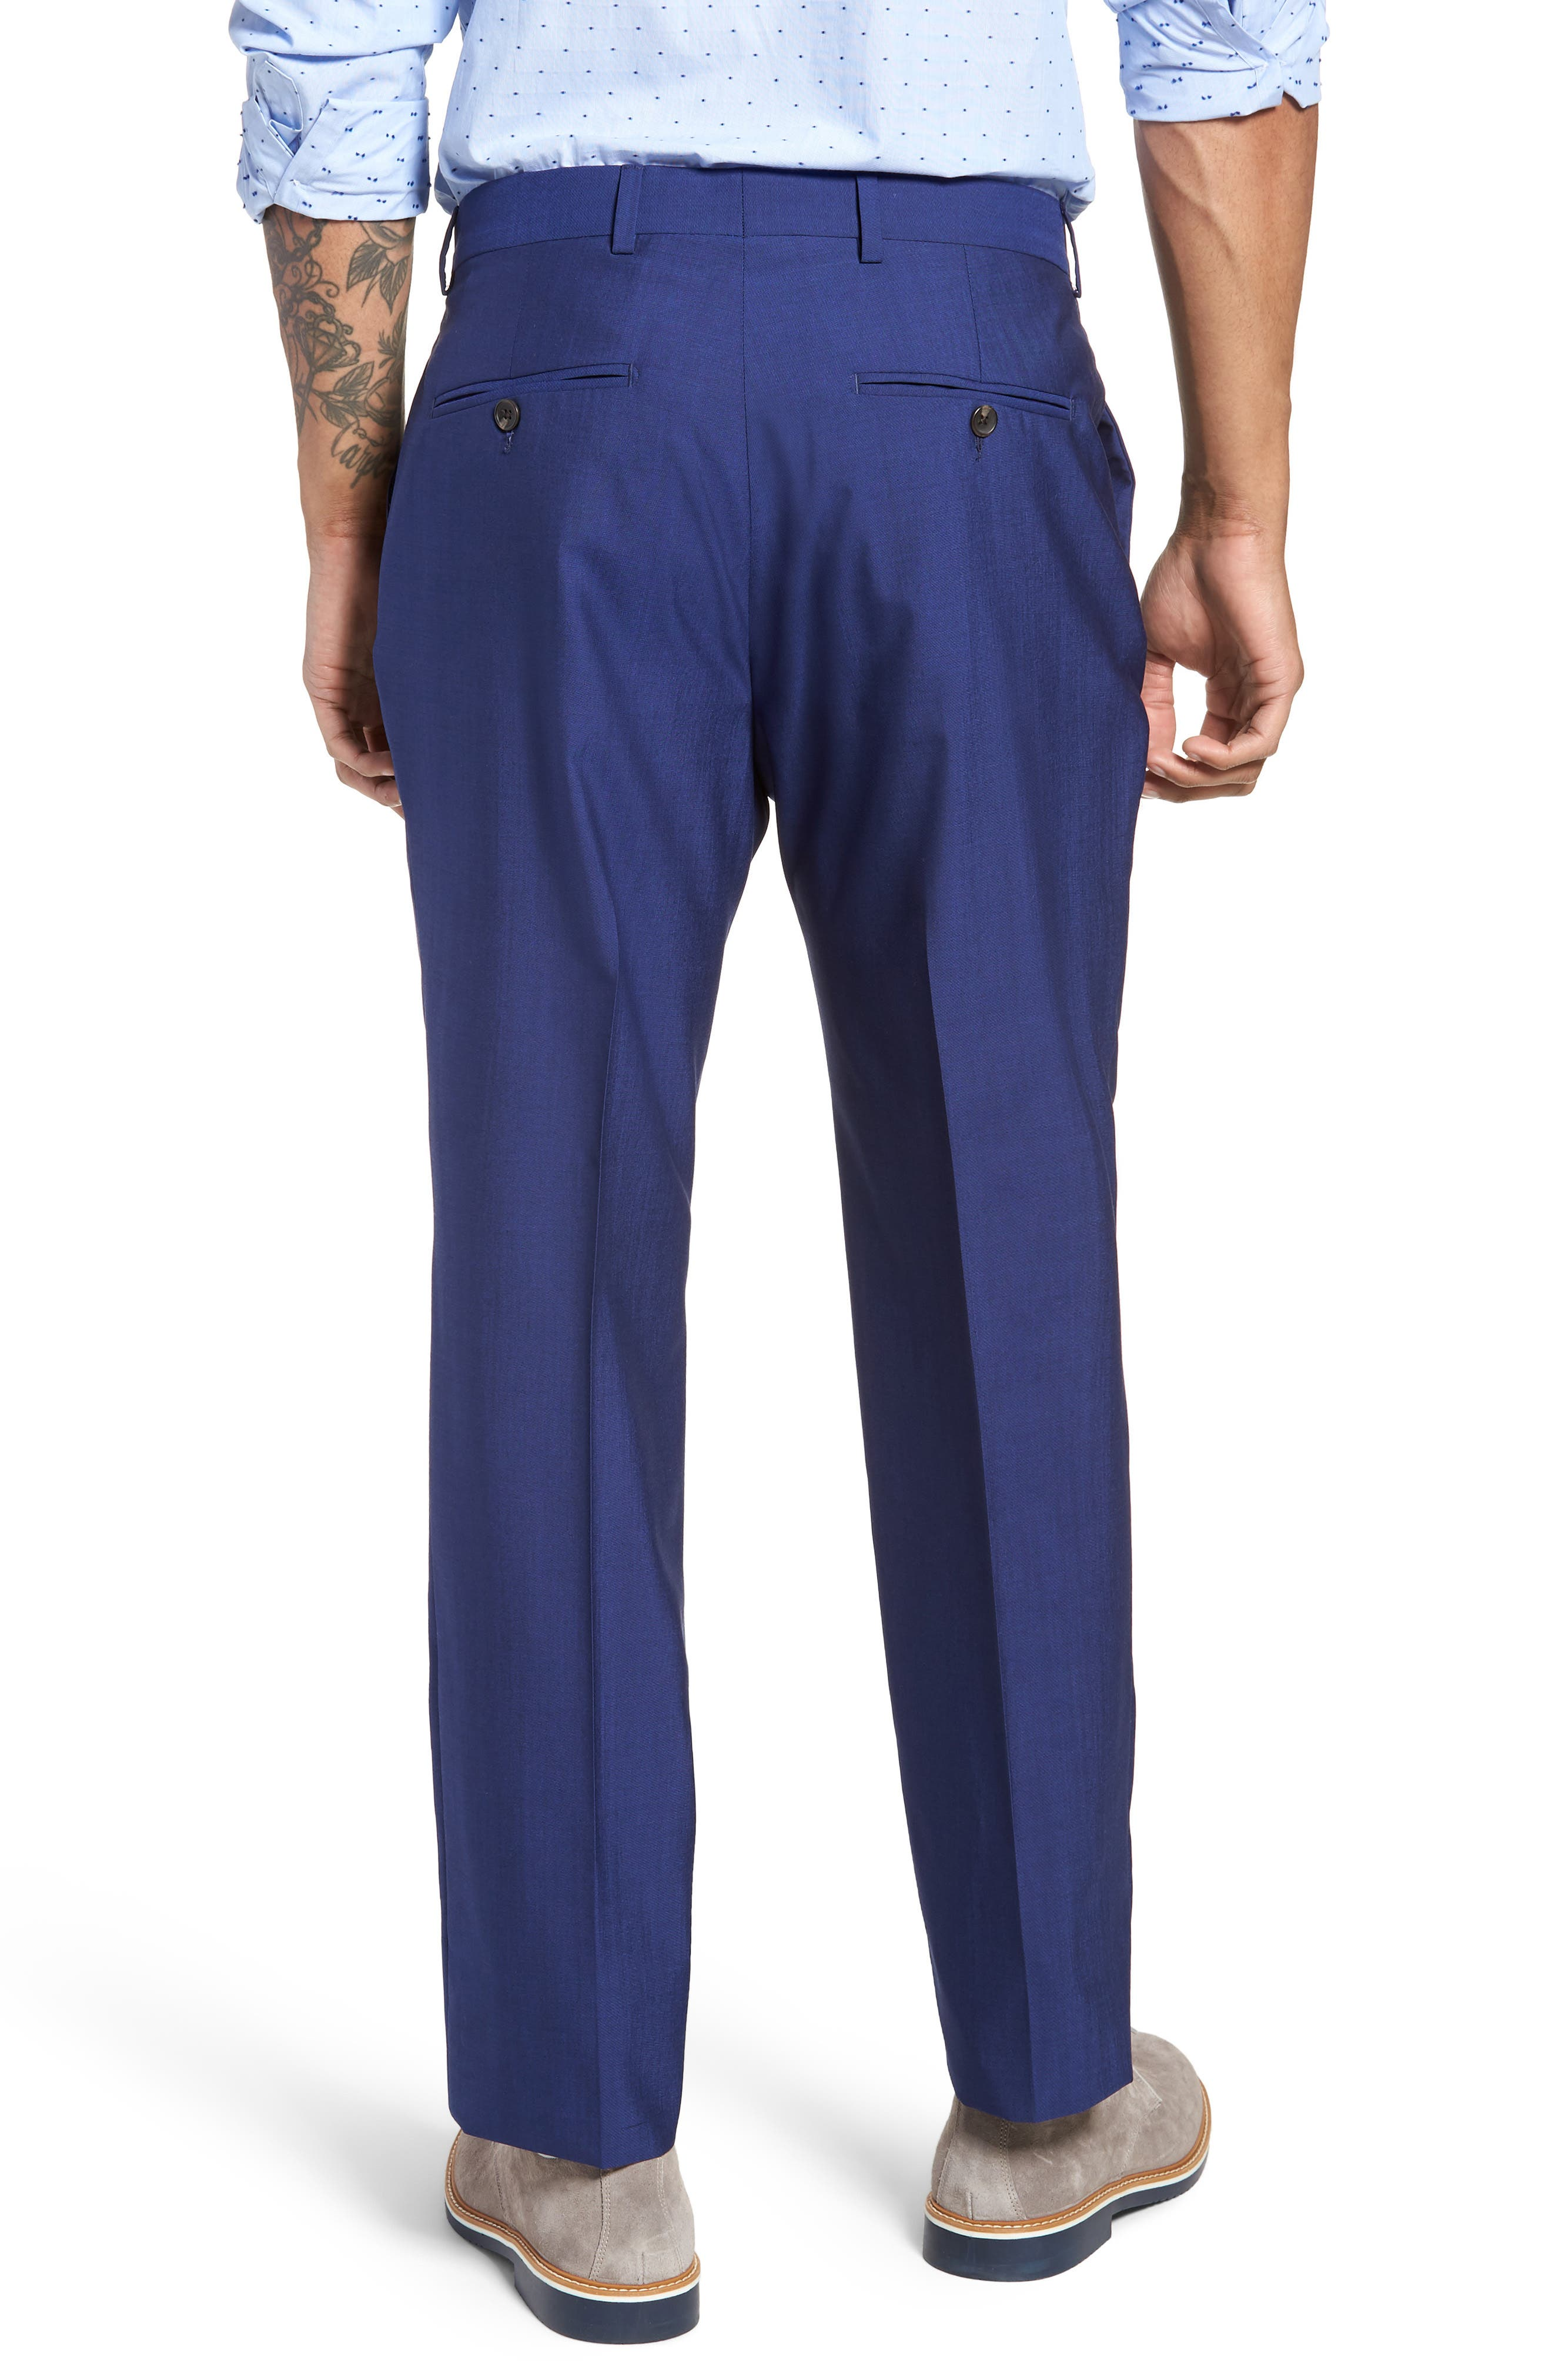 Dagger Flat Front Solid Wool Trousers,                             Alternate thumbnail 2, color,                             400